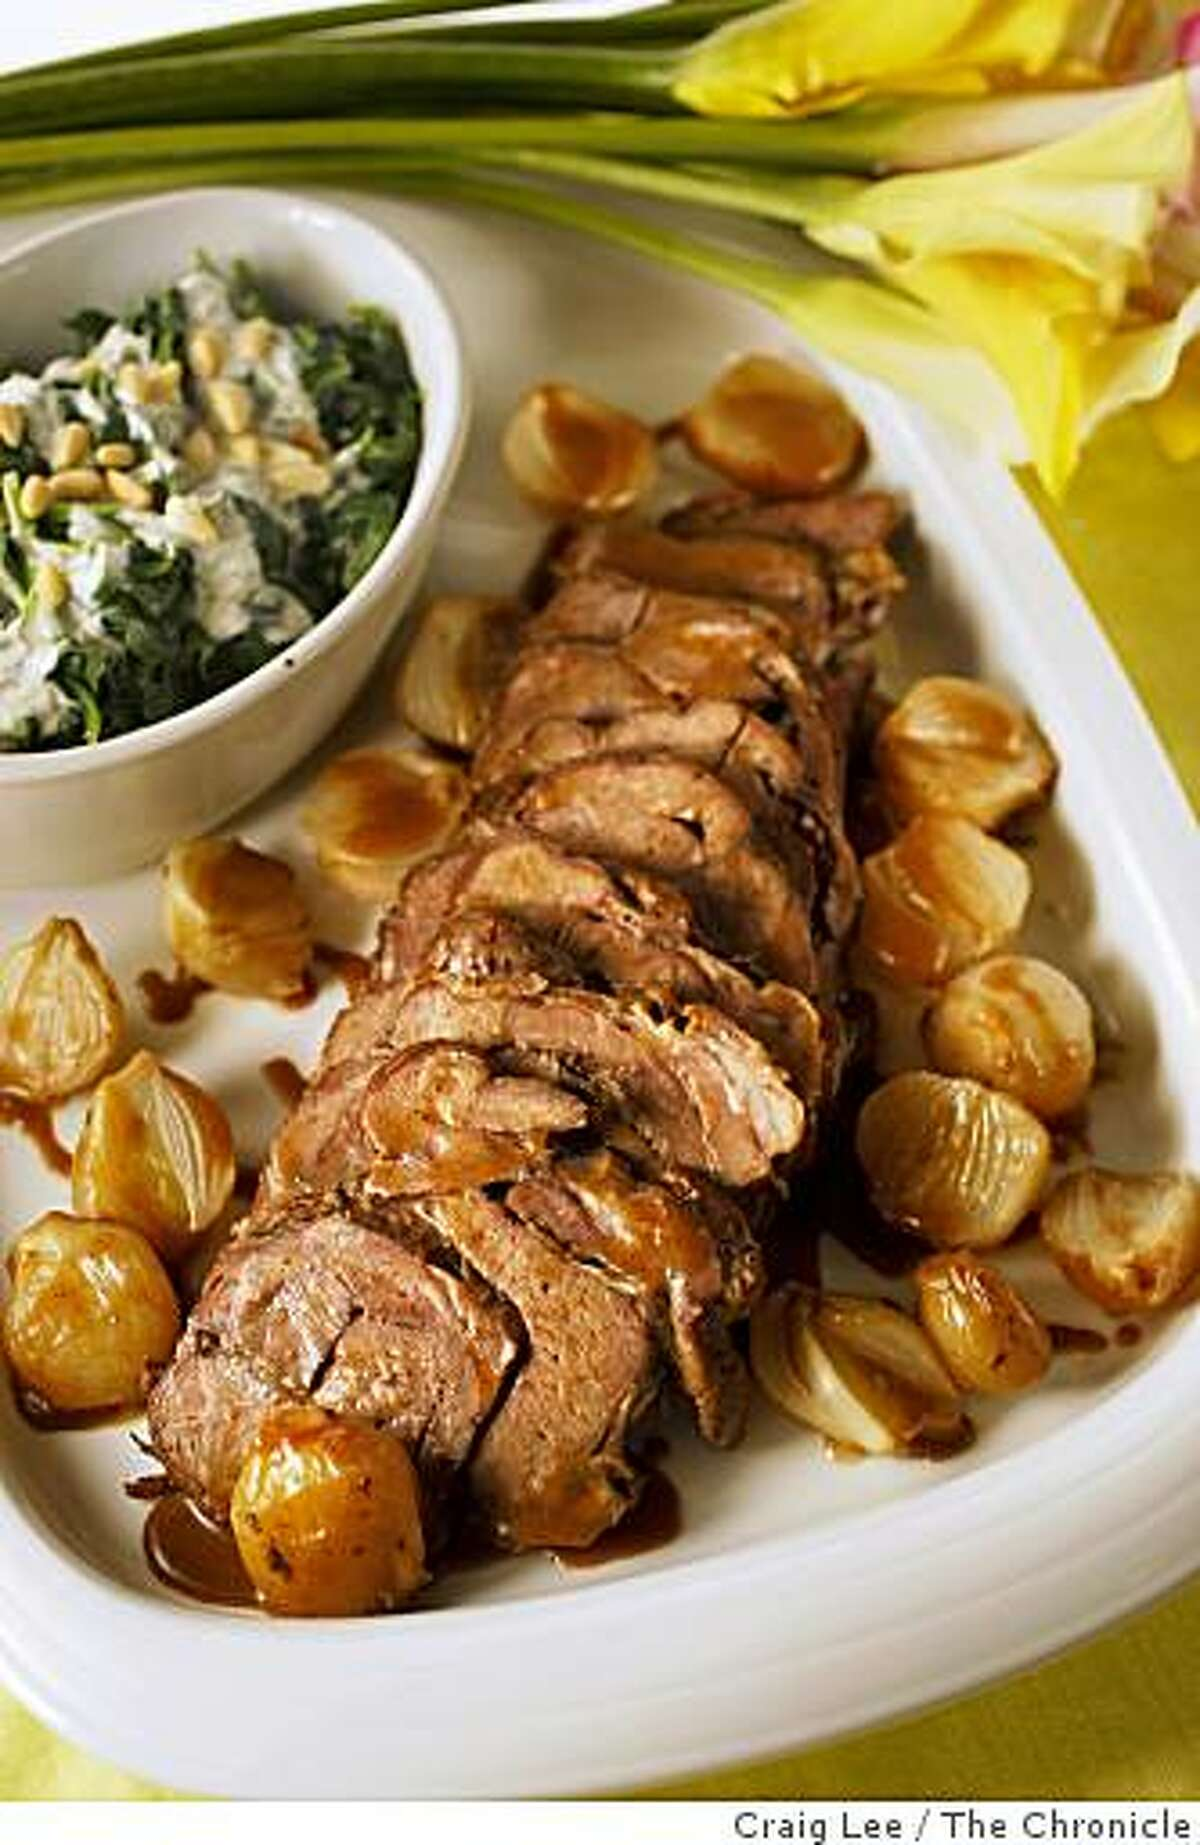 Braised Lamb Shoulder with Buttered Spinach, Yogurt Sauce and Pine Nuts in San Francisco, Calif., on March 25, 2009. Food styled by Shannon Shafer.